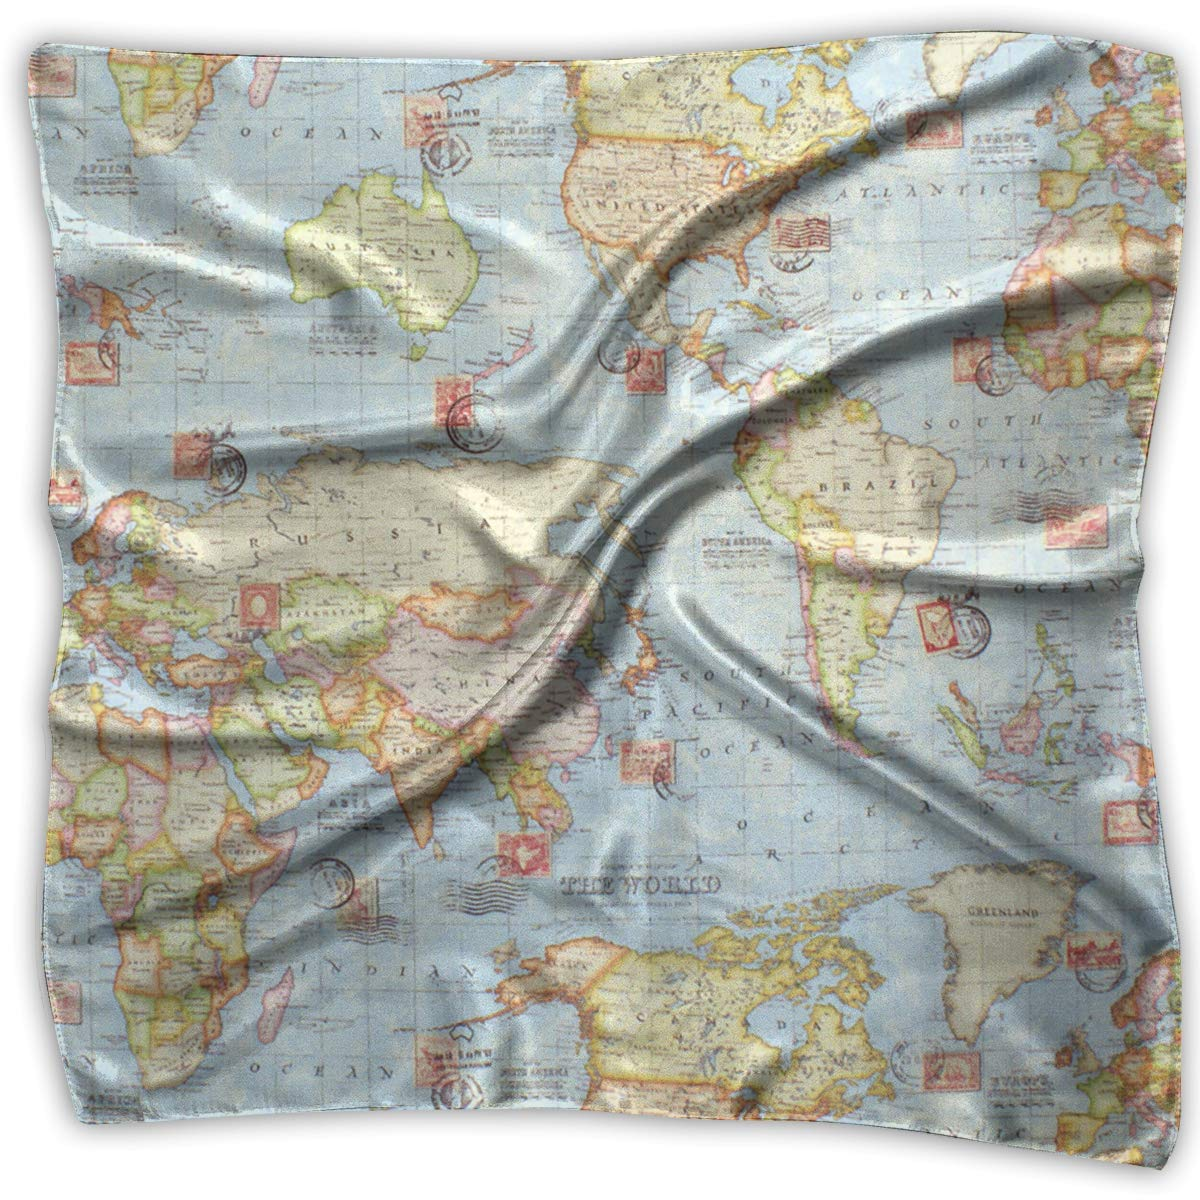 Atlas World Map Square Women Scarves Silk Skin Head Scarf For Spring Summer Size S M O4S8C71